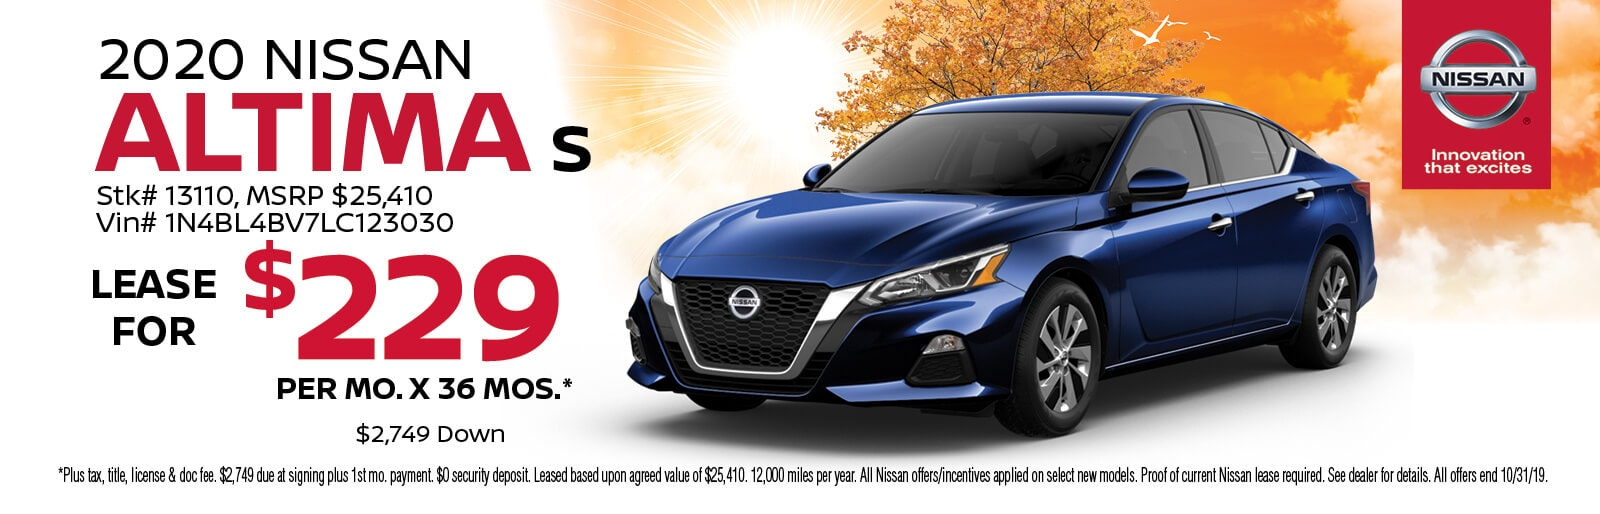 Lease a 2019 Nissan Altima S for $229/mo. for 36 mos.